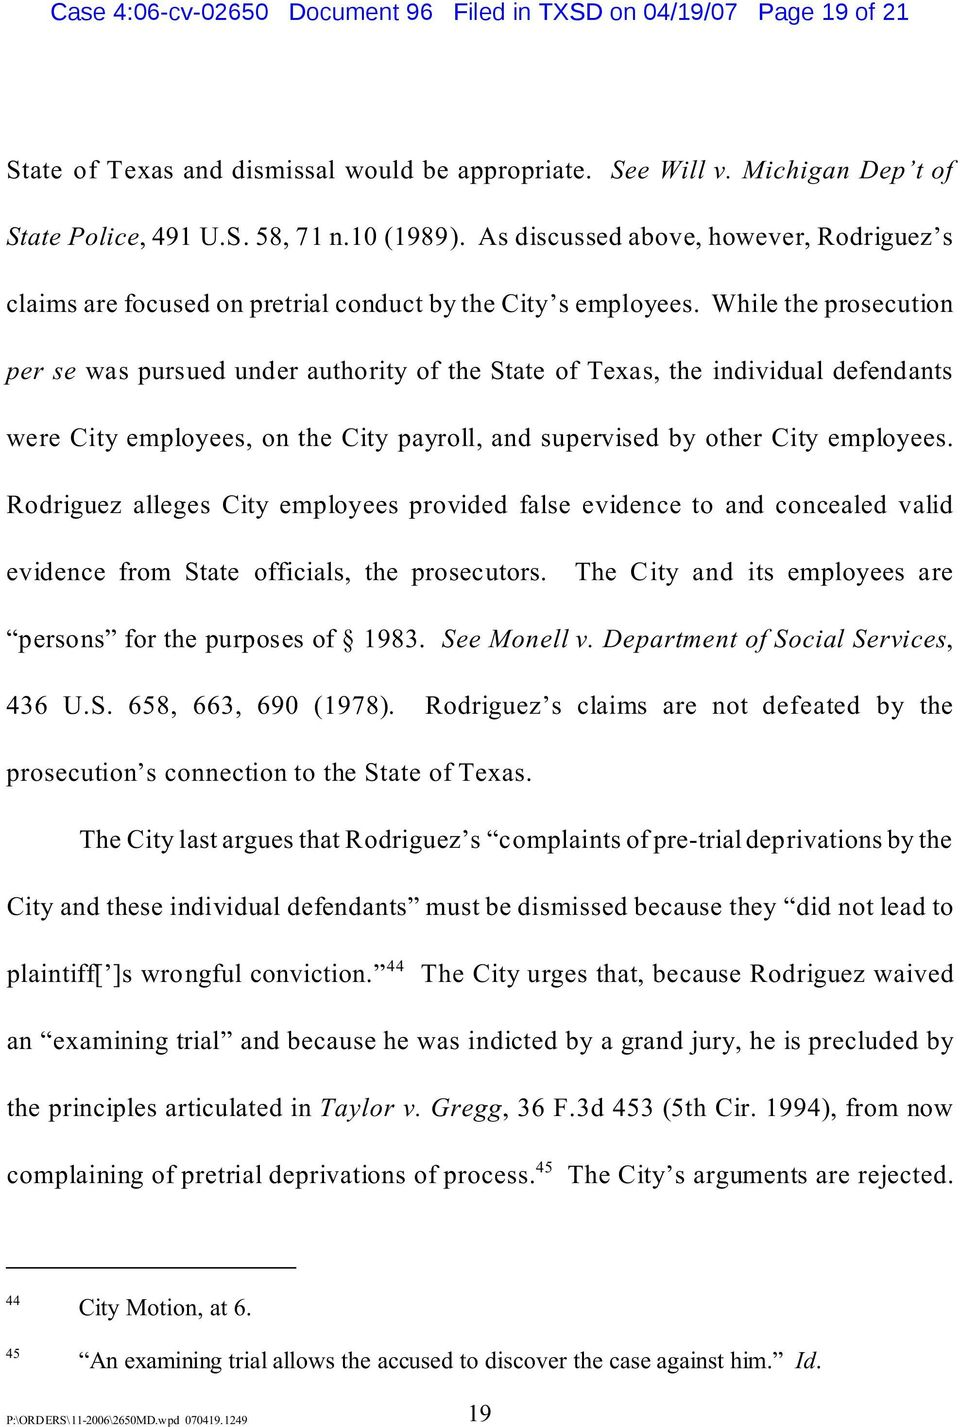 While the prosecution per se was pursued under authority of the State of Texas, the individual defendants were City employees, on the City payroll, and supervised by other City employees.